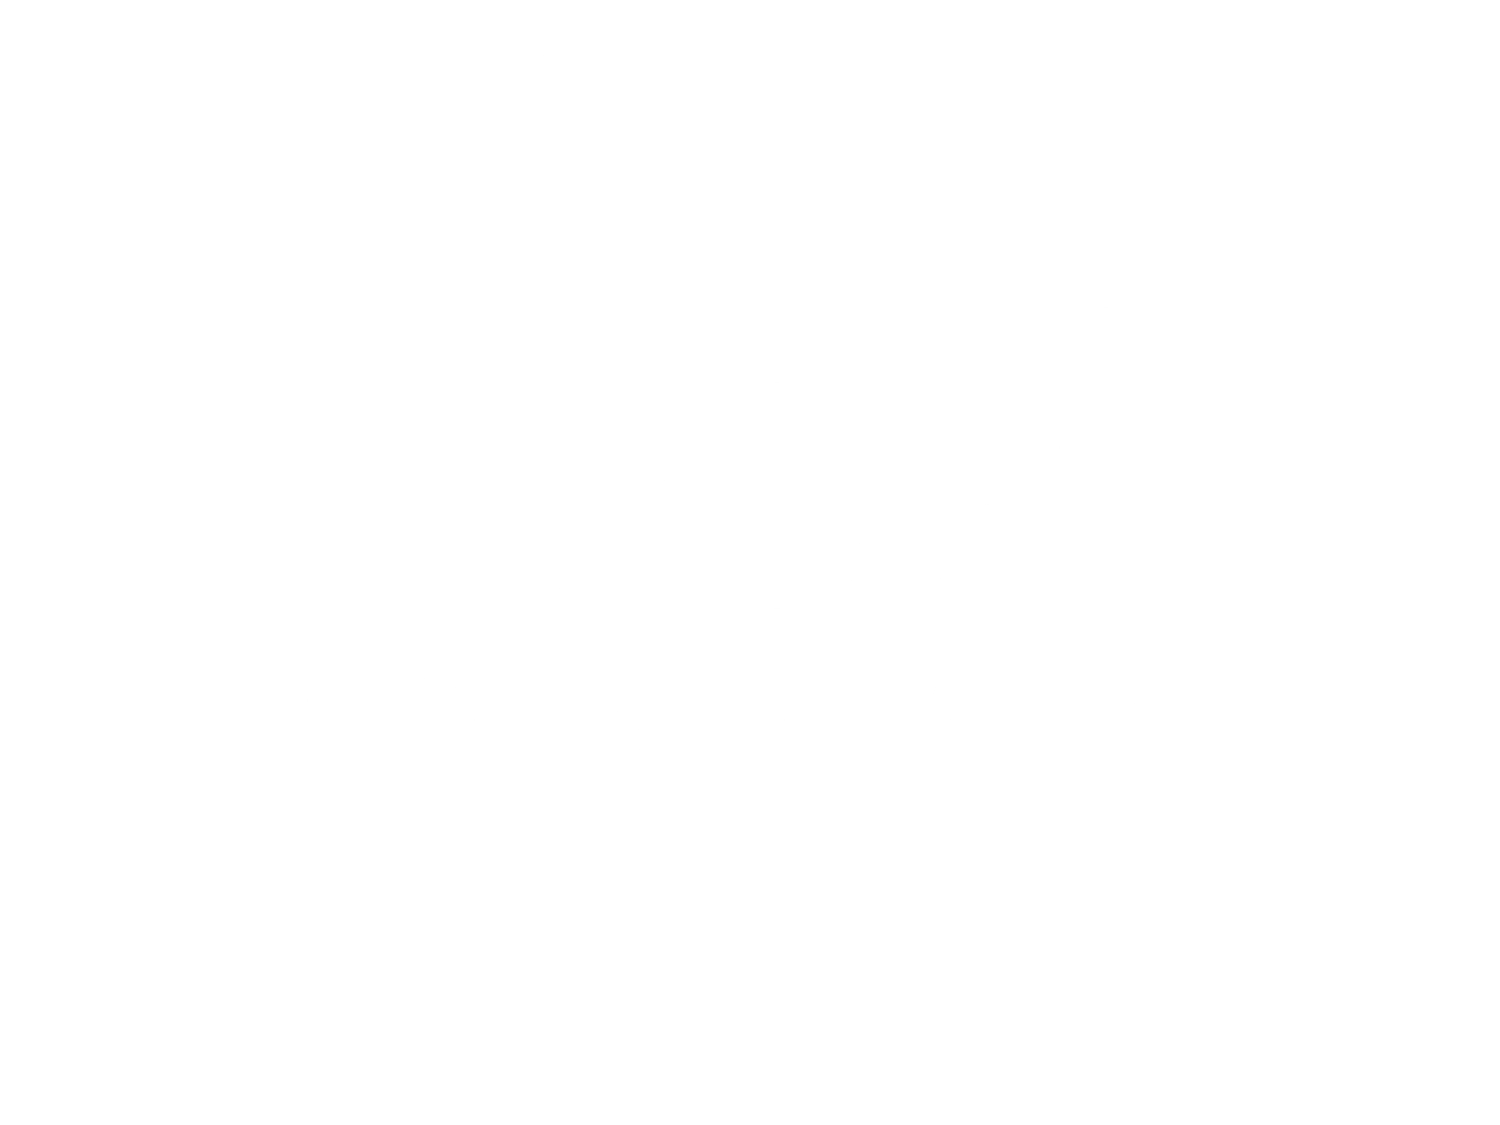 Hills Hope Performing Arts